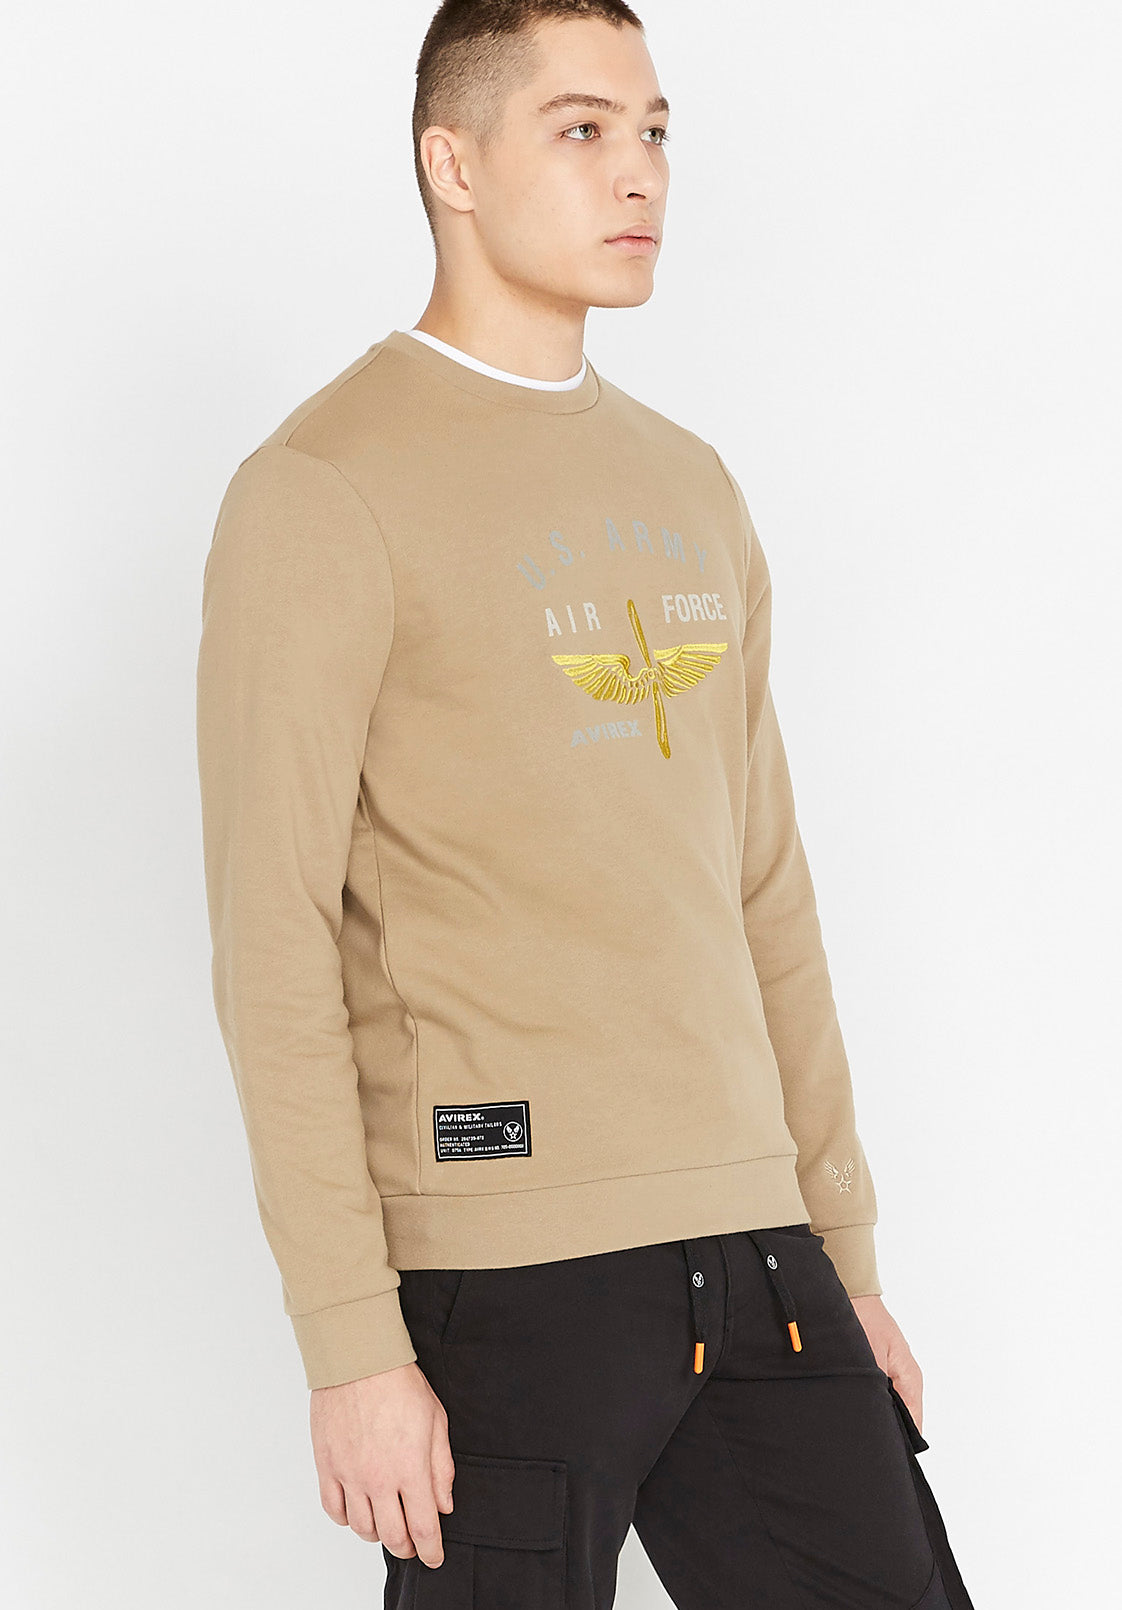 Side view of men wearing a beige long sleeve crew neck sweater with front US Army white and yellow logo and black side patch on right bottom corner